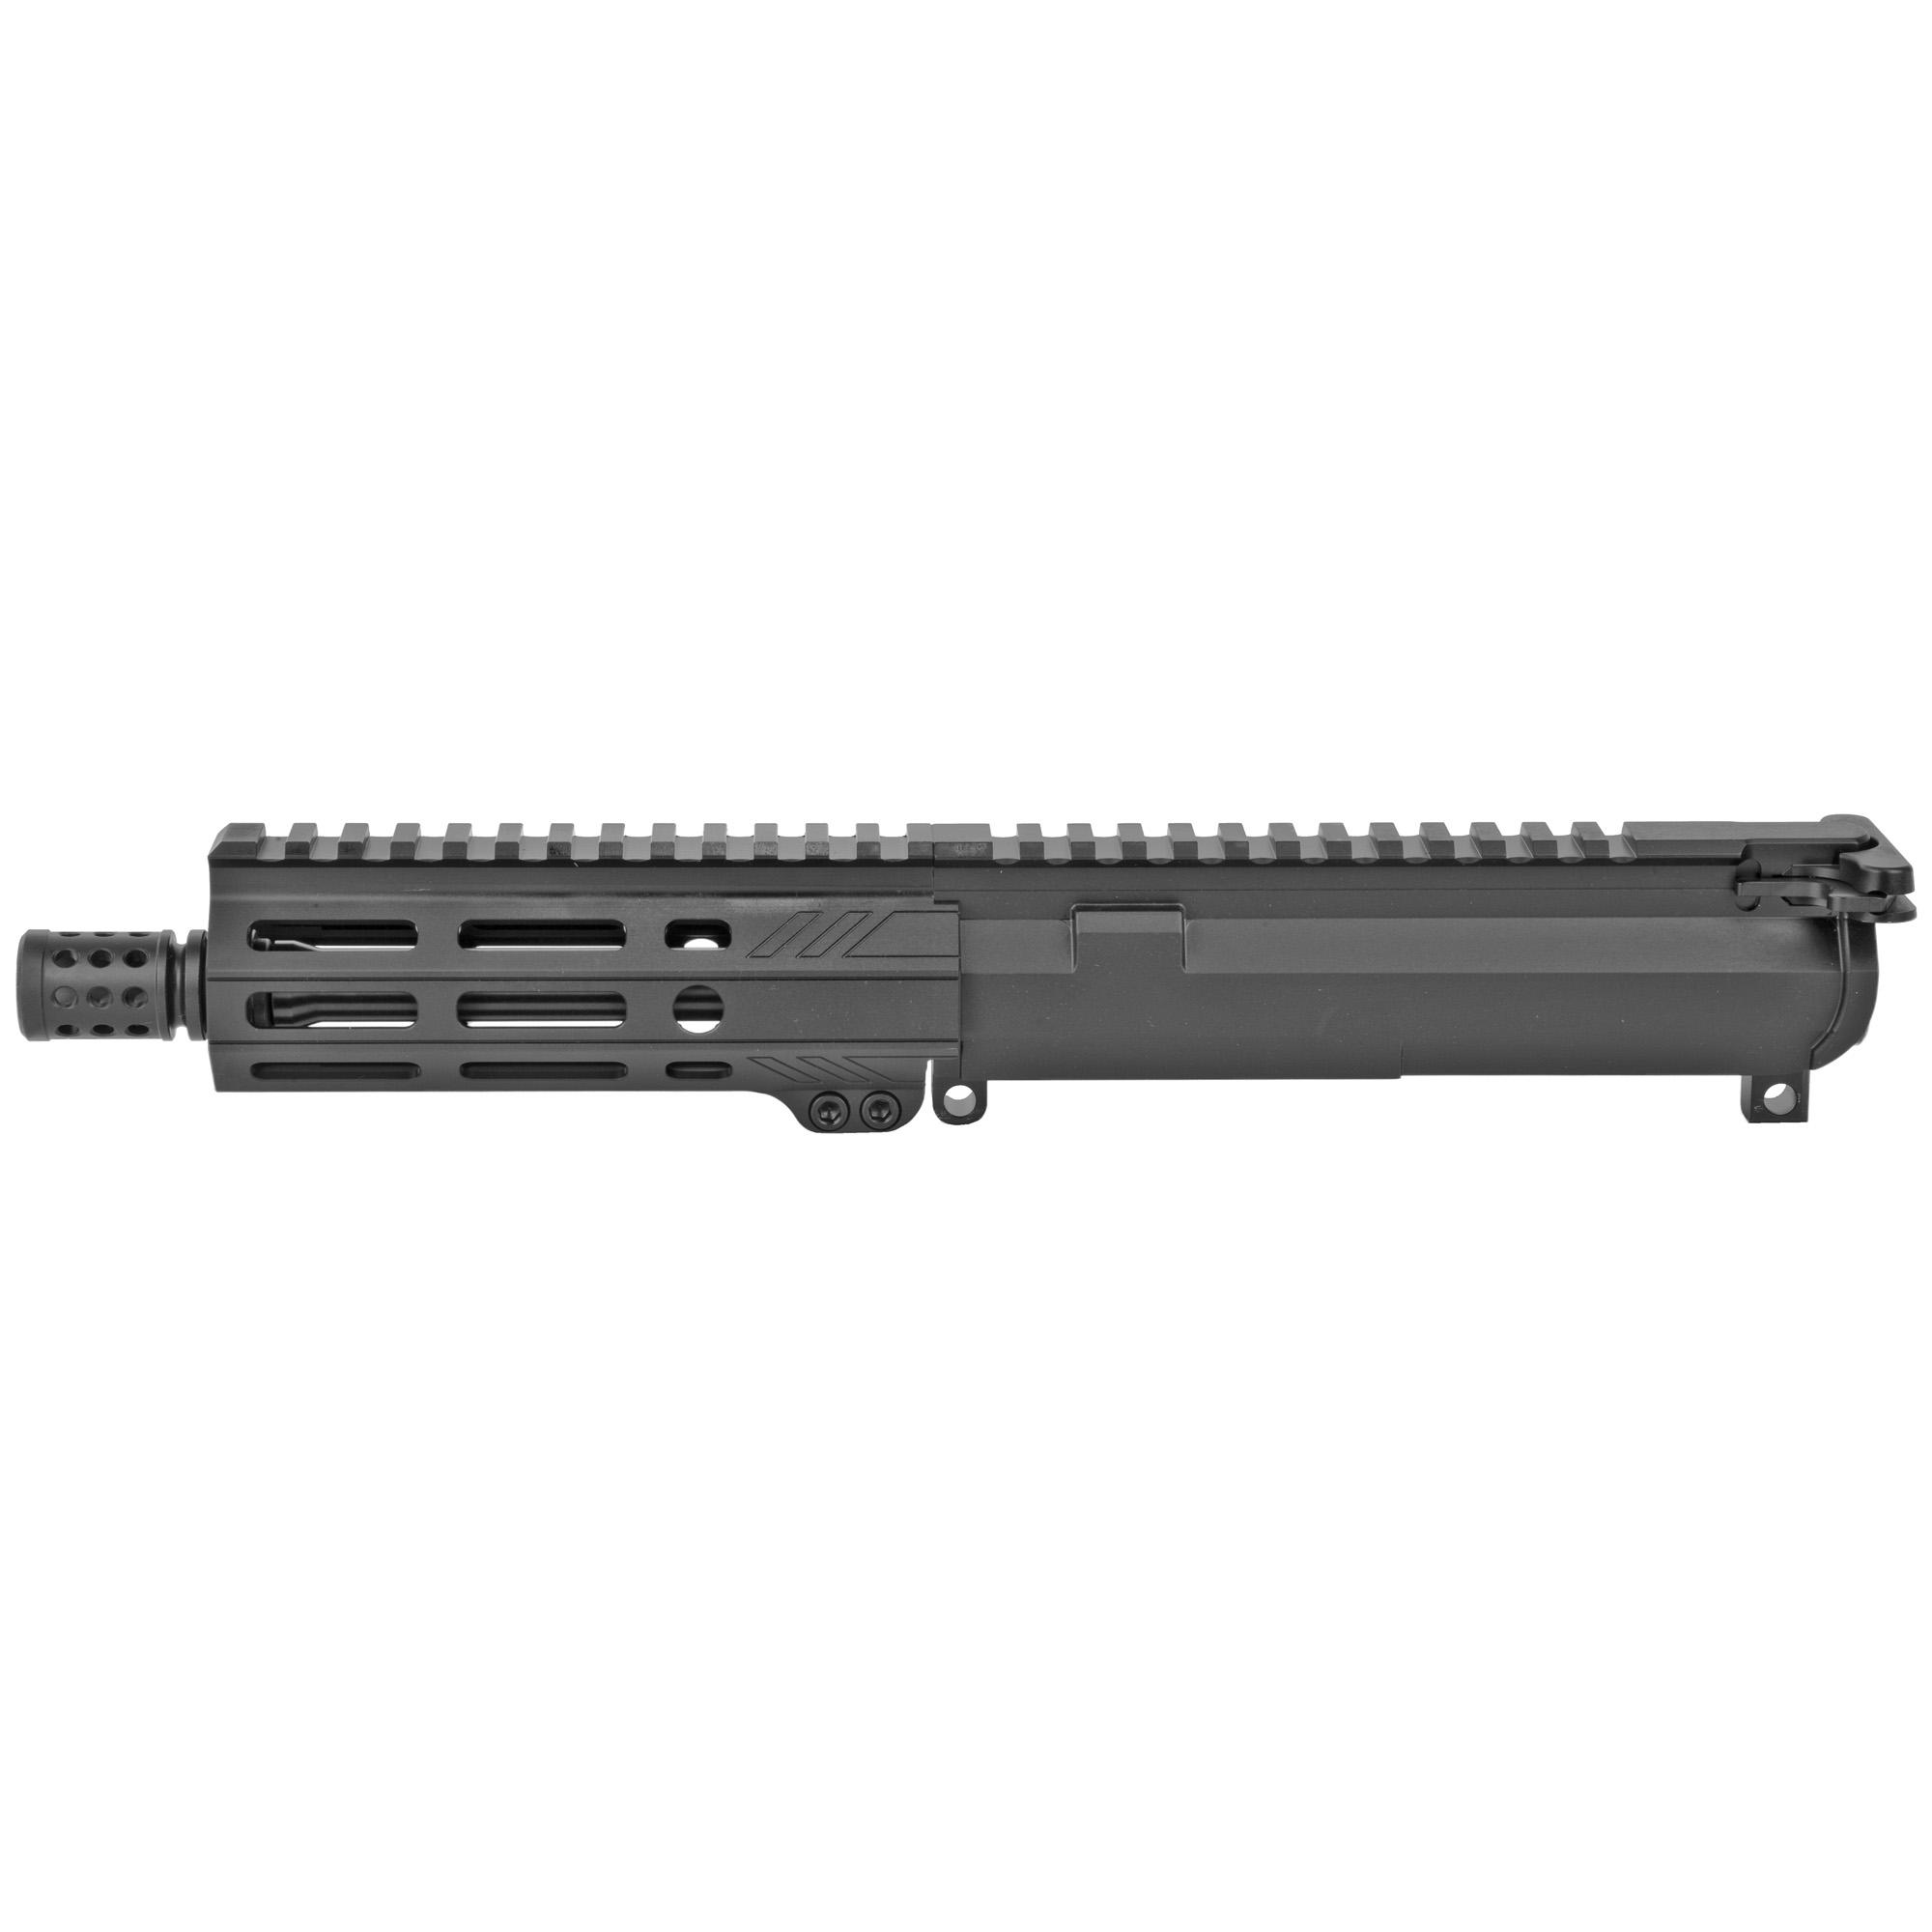 Angstadt Arms Angstadt Arms Complete Upper 9mm 6